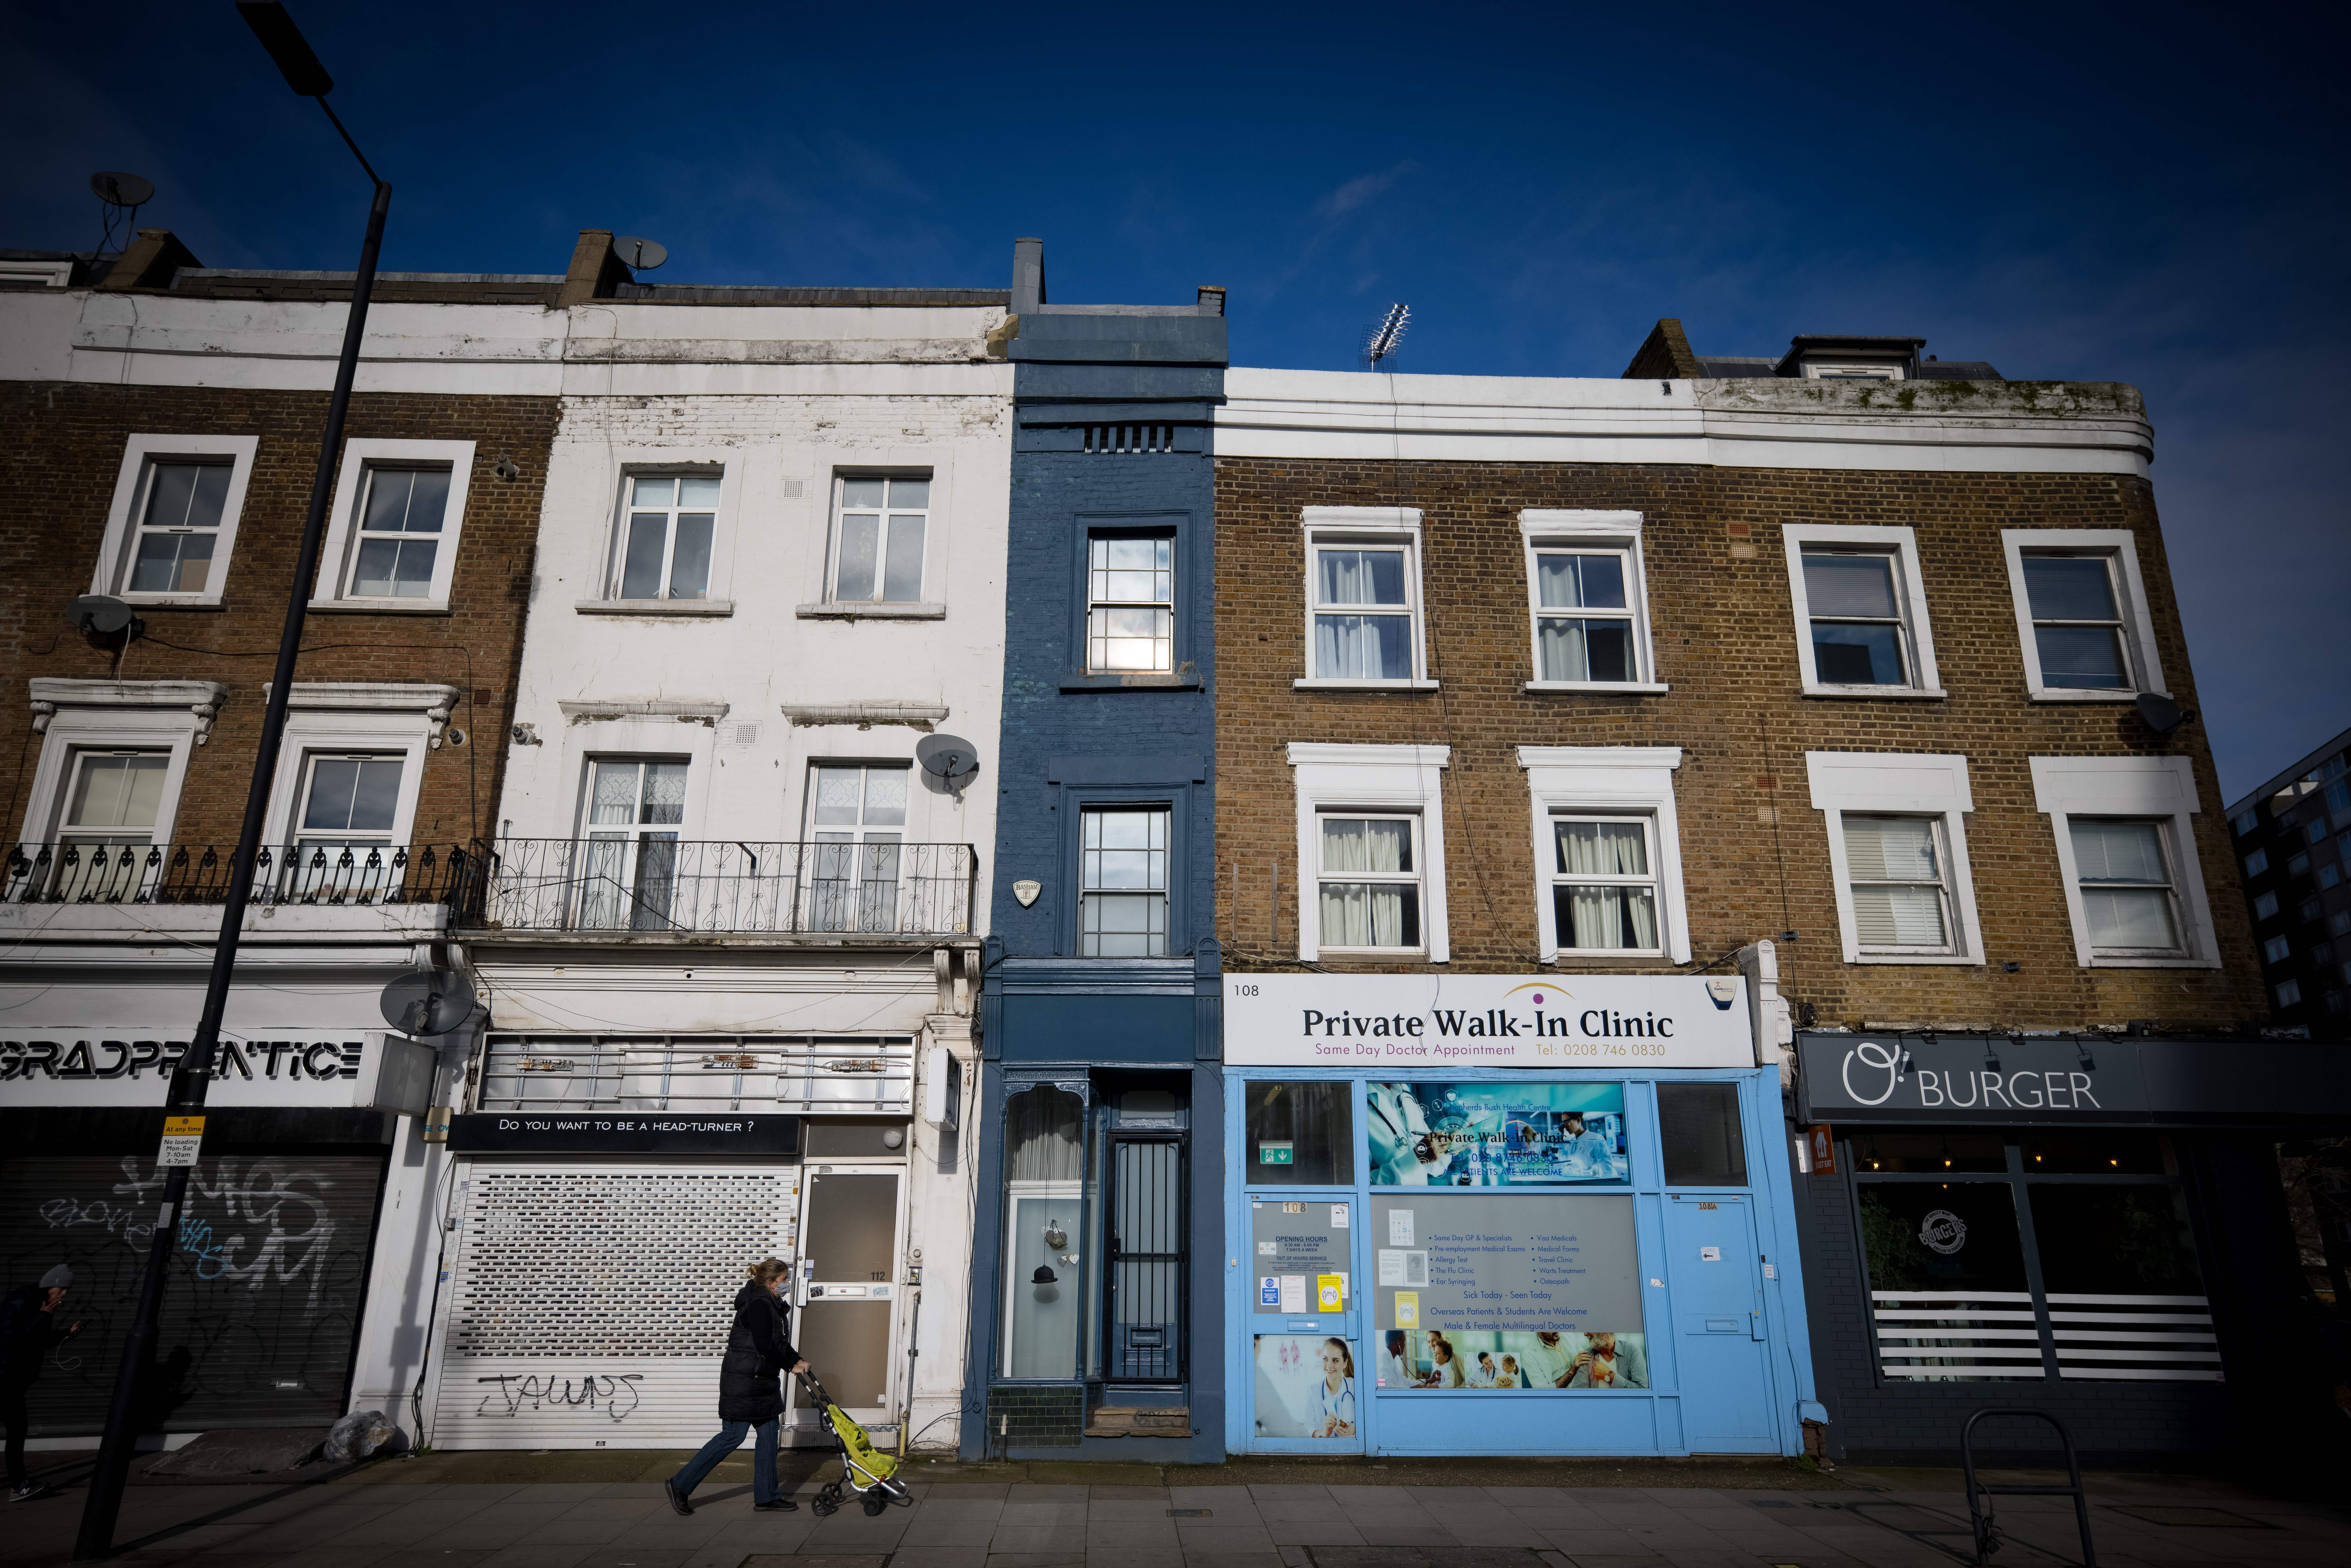 A pedestrian passes the front of what is dubbed 'London's thinnest house' (painted blue) in west London on February 5, 2021. - Wedged neatly between a doctor's surgery and a shuttered hairdressing salon, the five floor house in Shepherds Bush is just 5ft 6ins (1.6 metres) at its narrowest point and is currently on the market for £950,000 ($1,300,000, 1,100,000 euros). The unusual property, originally a Victorian hat shop with storage for merchandise and living quarters on its upper floors, was built sometime in the late 19th or early 20th century. (Photo by Tolga Akmen / AFP) (Photo by TOLGA AKMEN/AFP via Getty Images)